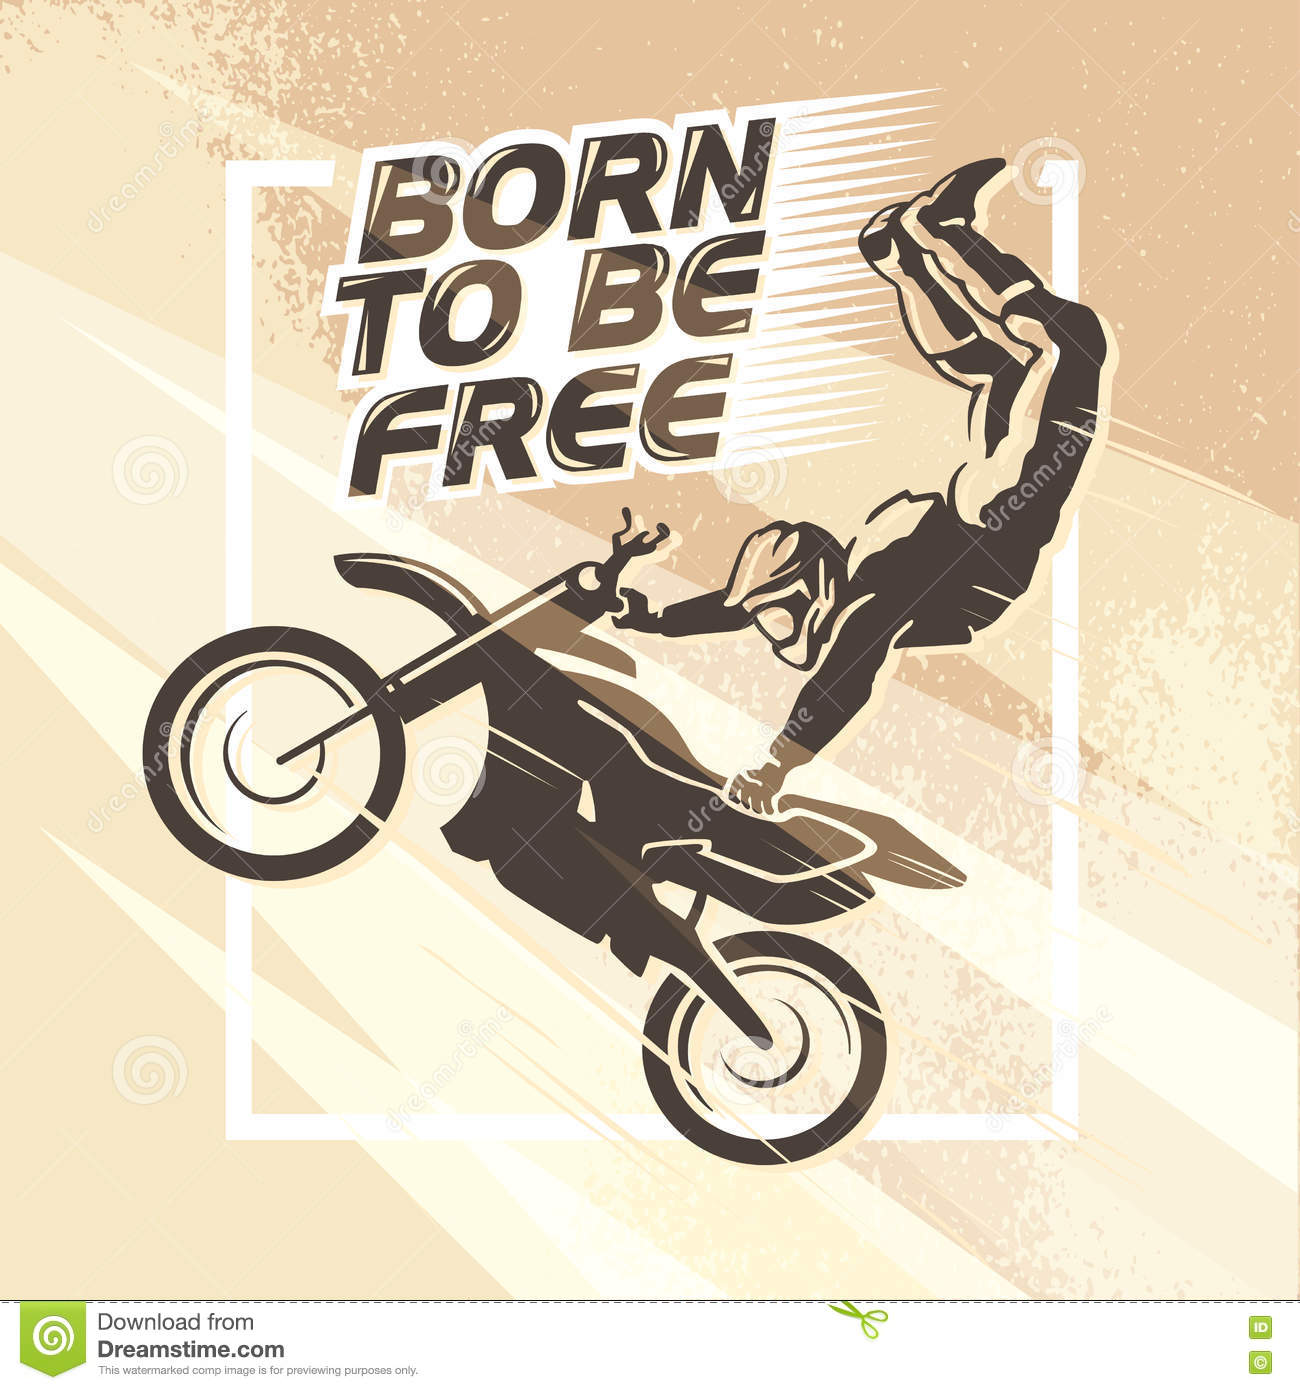 Motofree vector flat dynamic extreme sport illustration with moto free style